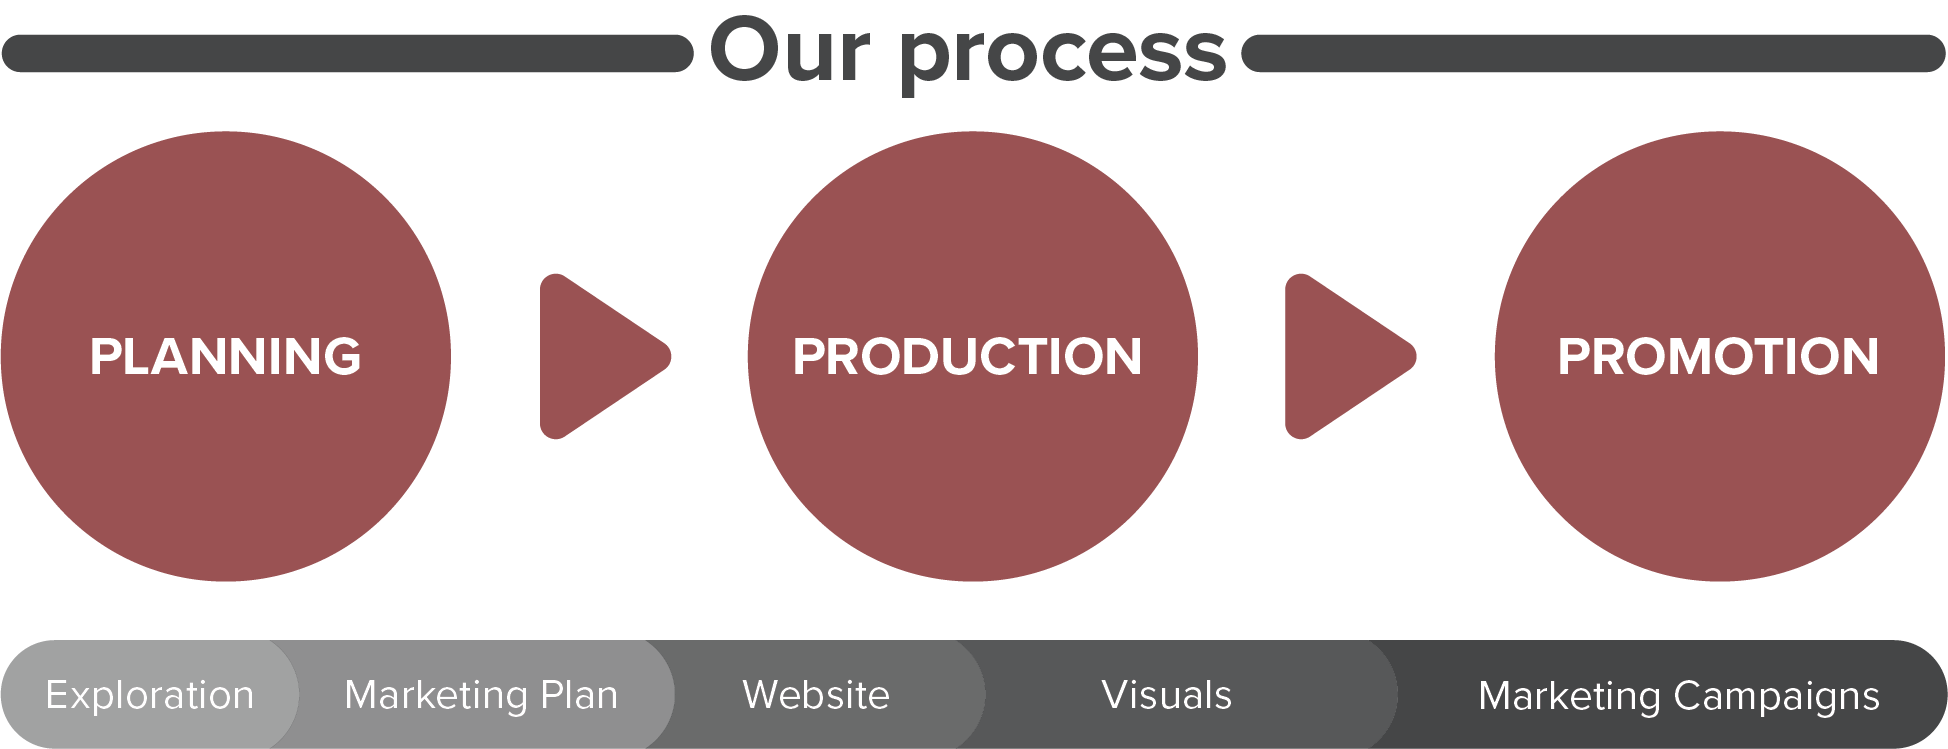 OurprocessIconium copy.png